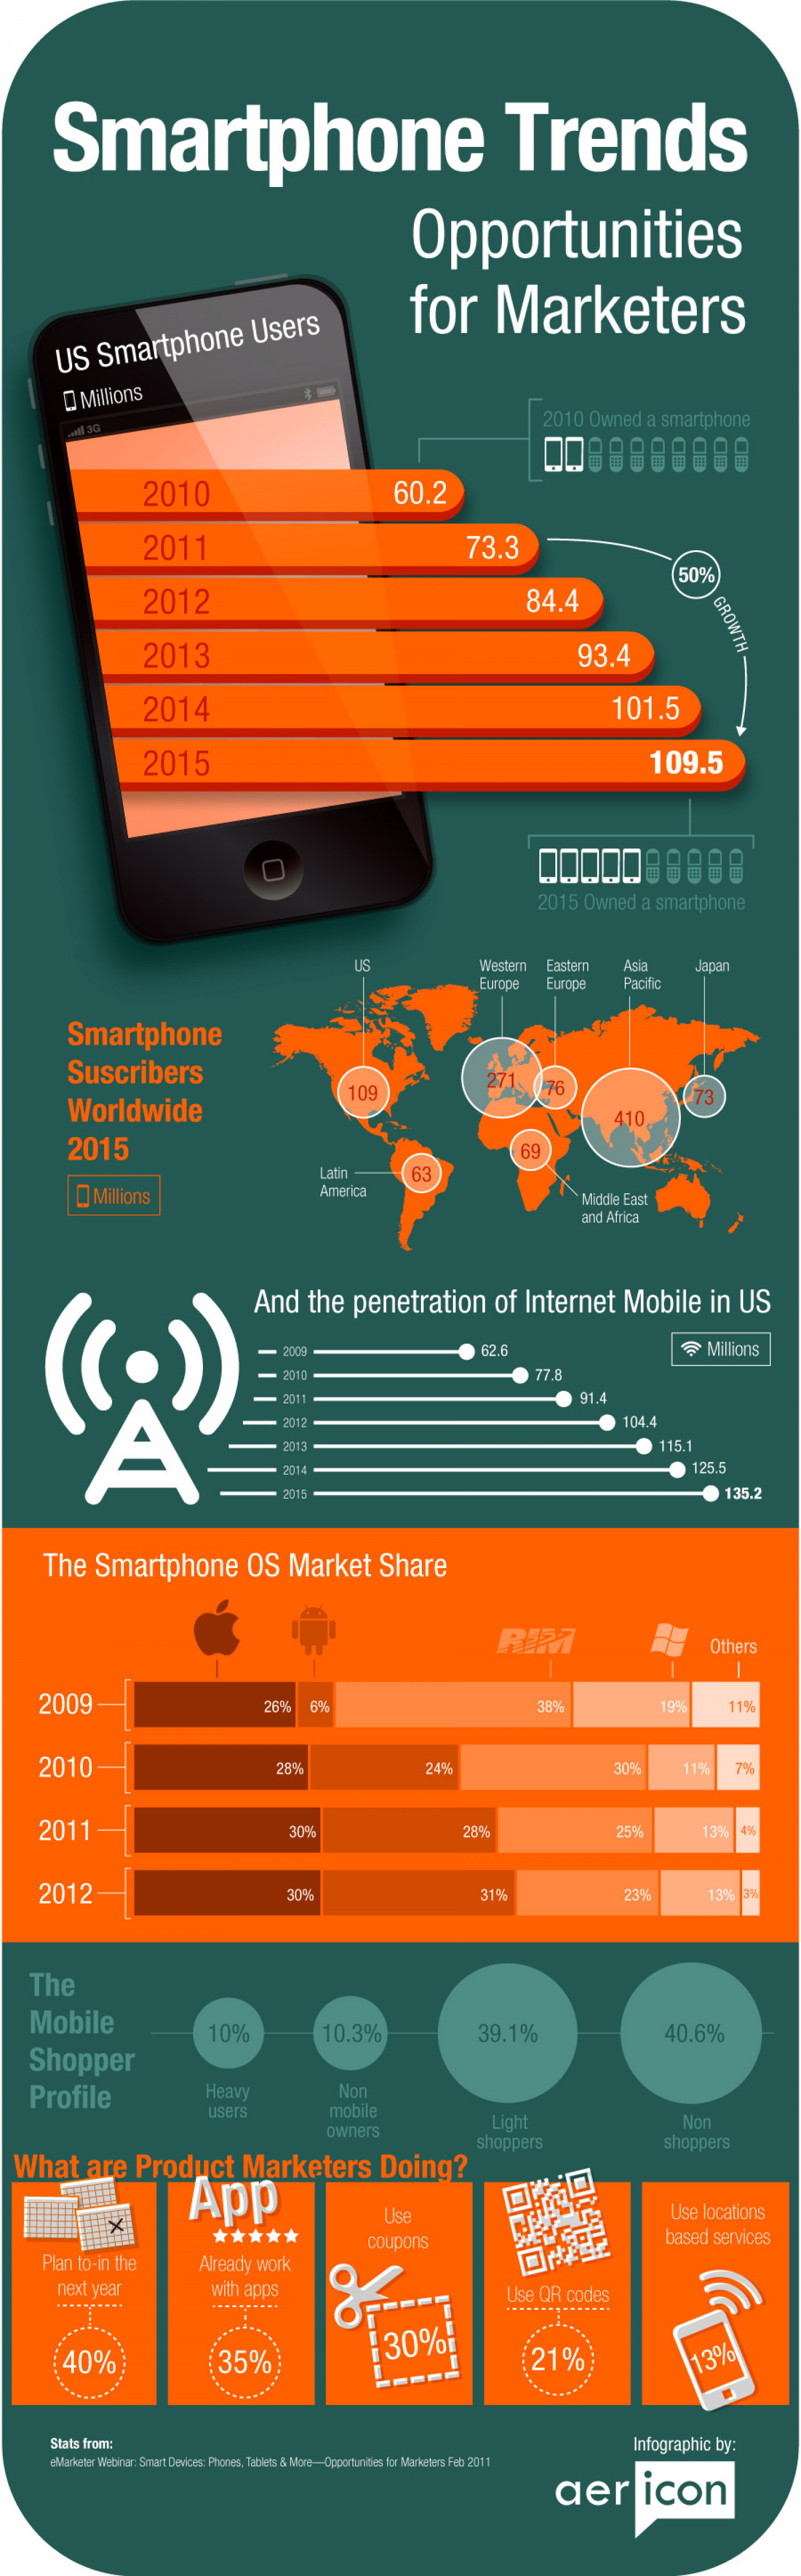 Smartphone Trends Infographic